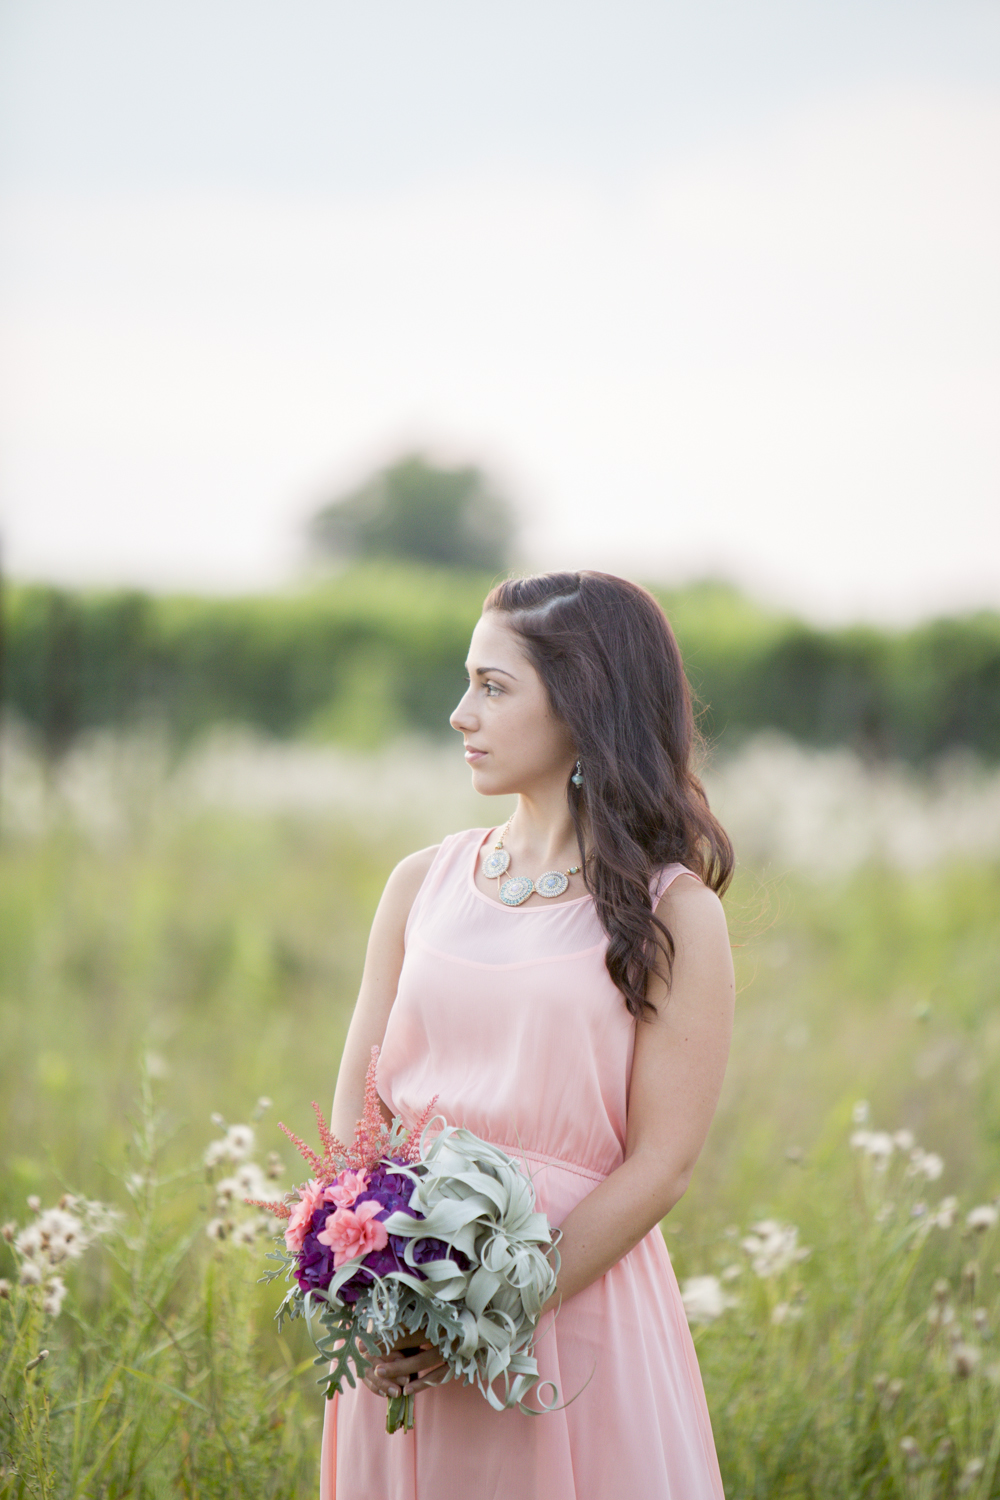 eva-derrick-photography-creative-candy-by-katie-lush-florals-niagara-on-the-lake-portrait-wedding-photographer-photo-summer-candy-florals-flowers-jewellery-model-hair-makeup-photo.JPG